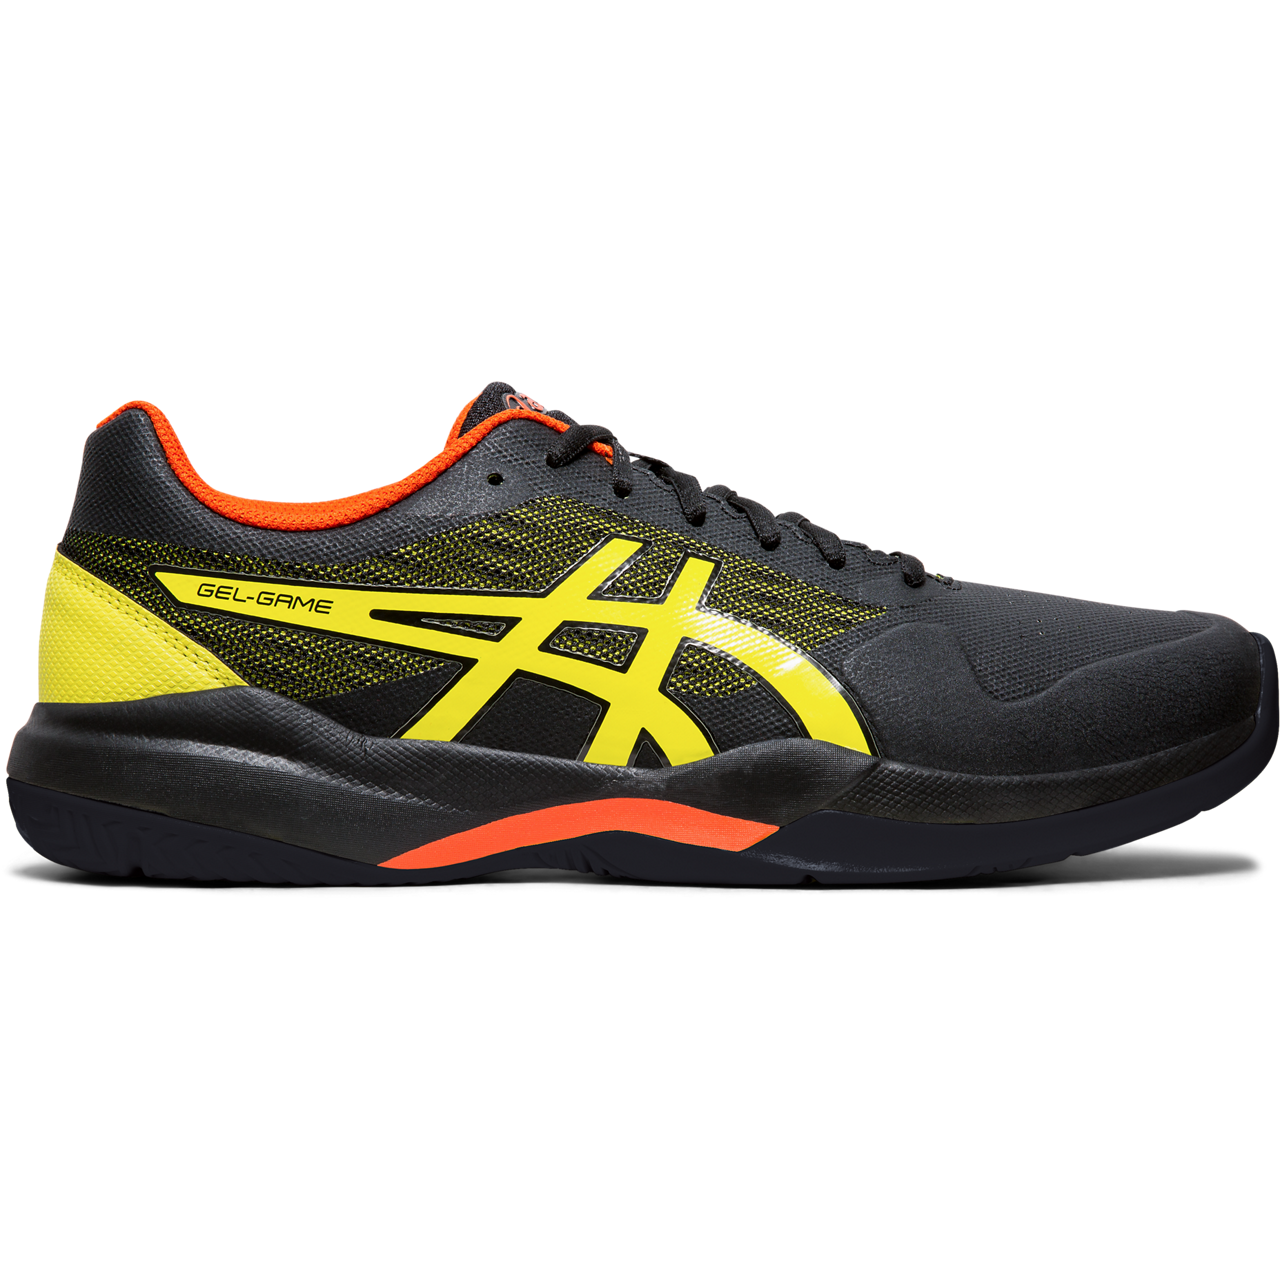 asics gel game 5 mens tennis shoes review gold